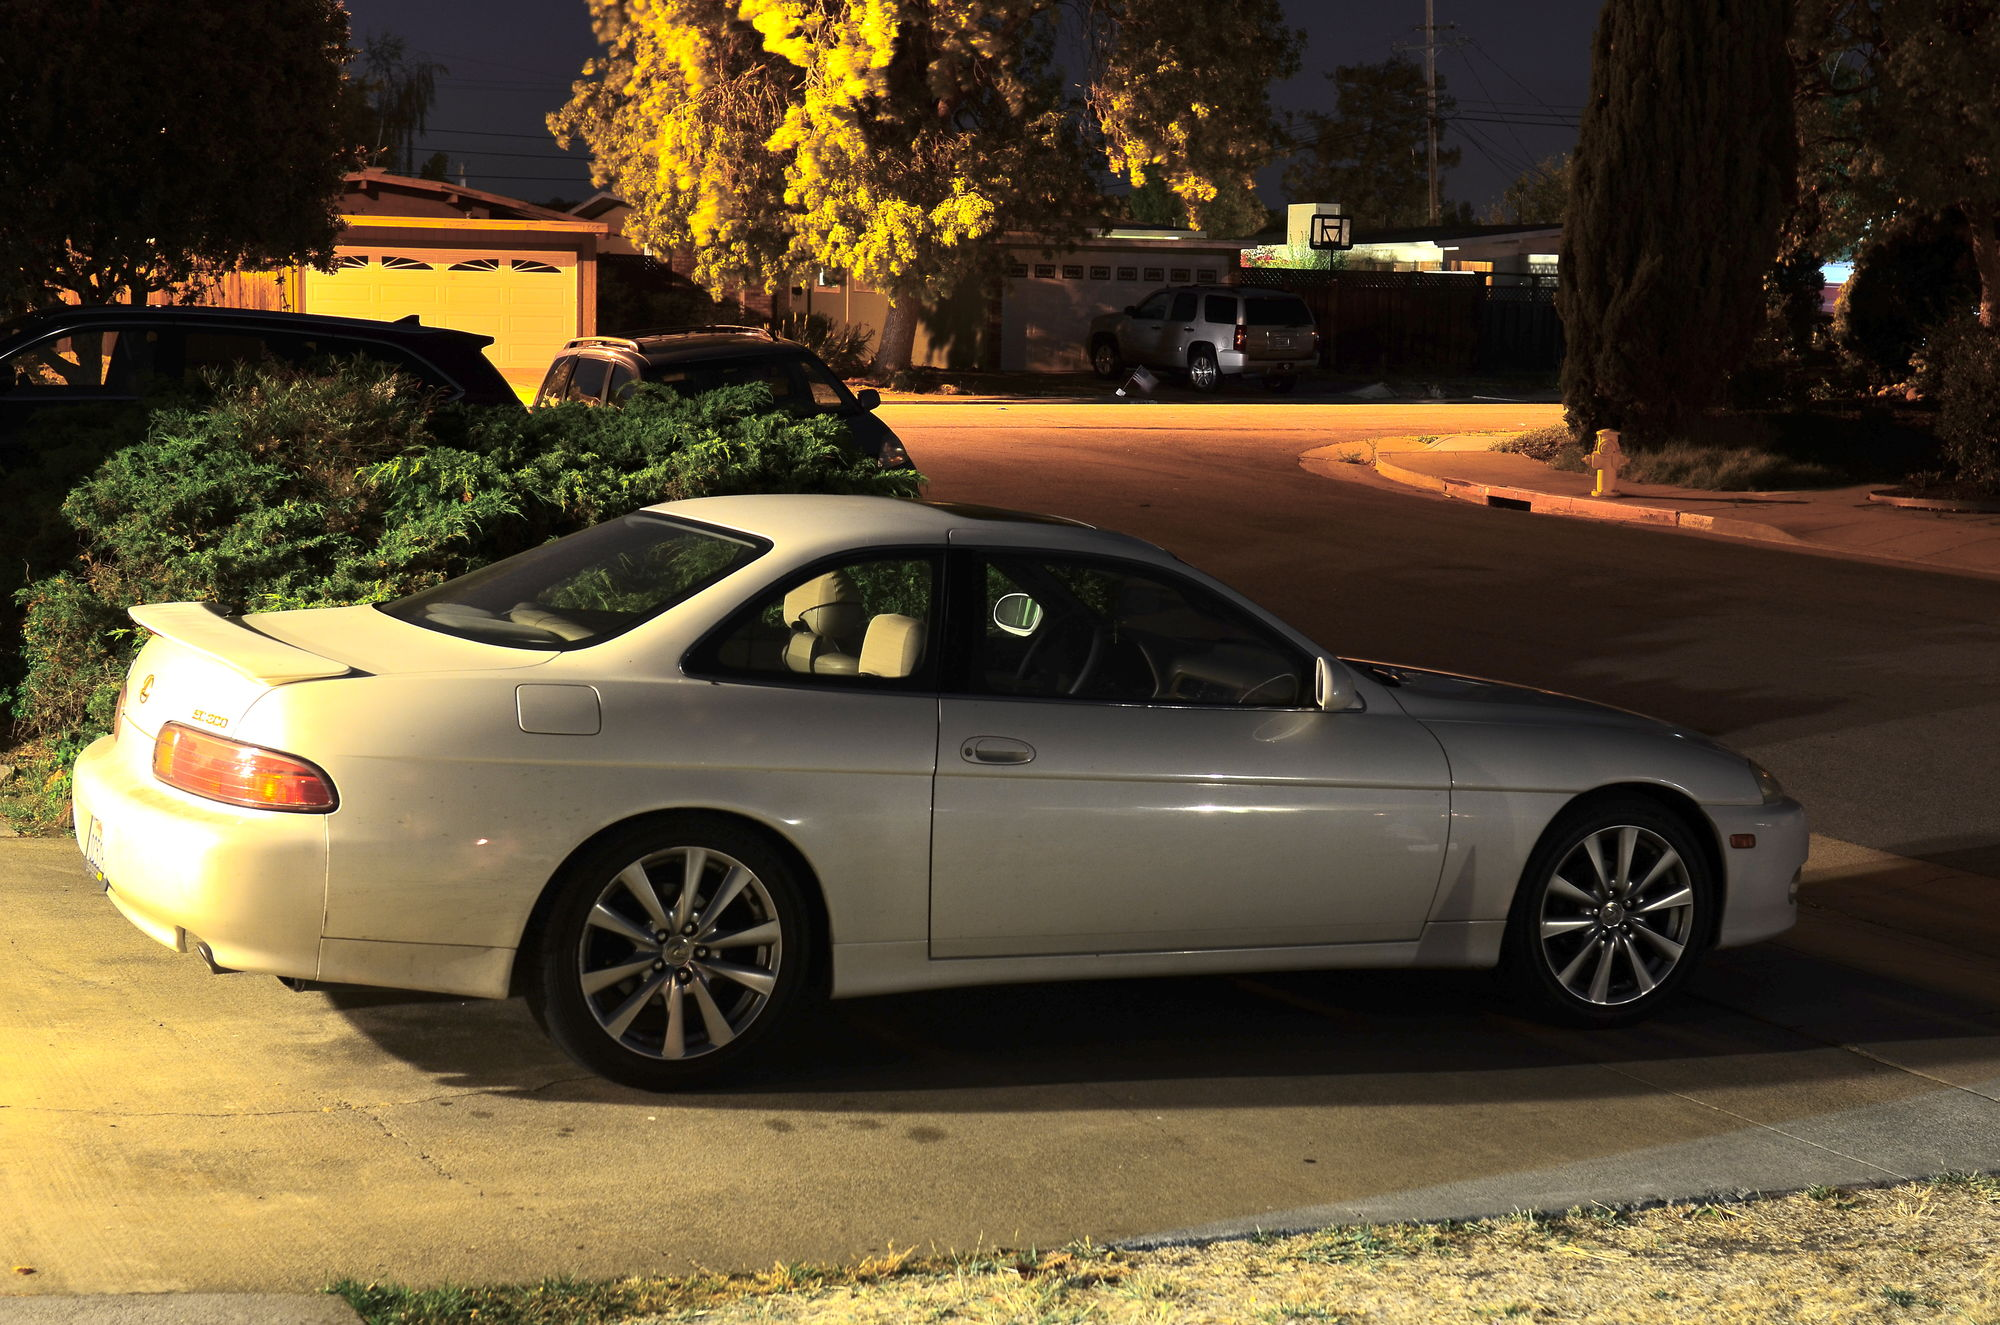 CA For Sale Los Angeles Bay Area 1997 Lexus SC300 With Manual